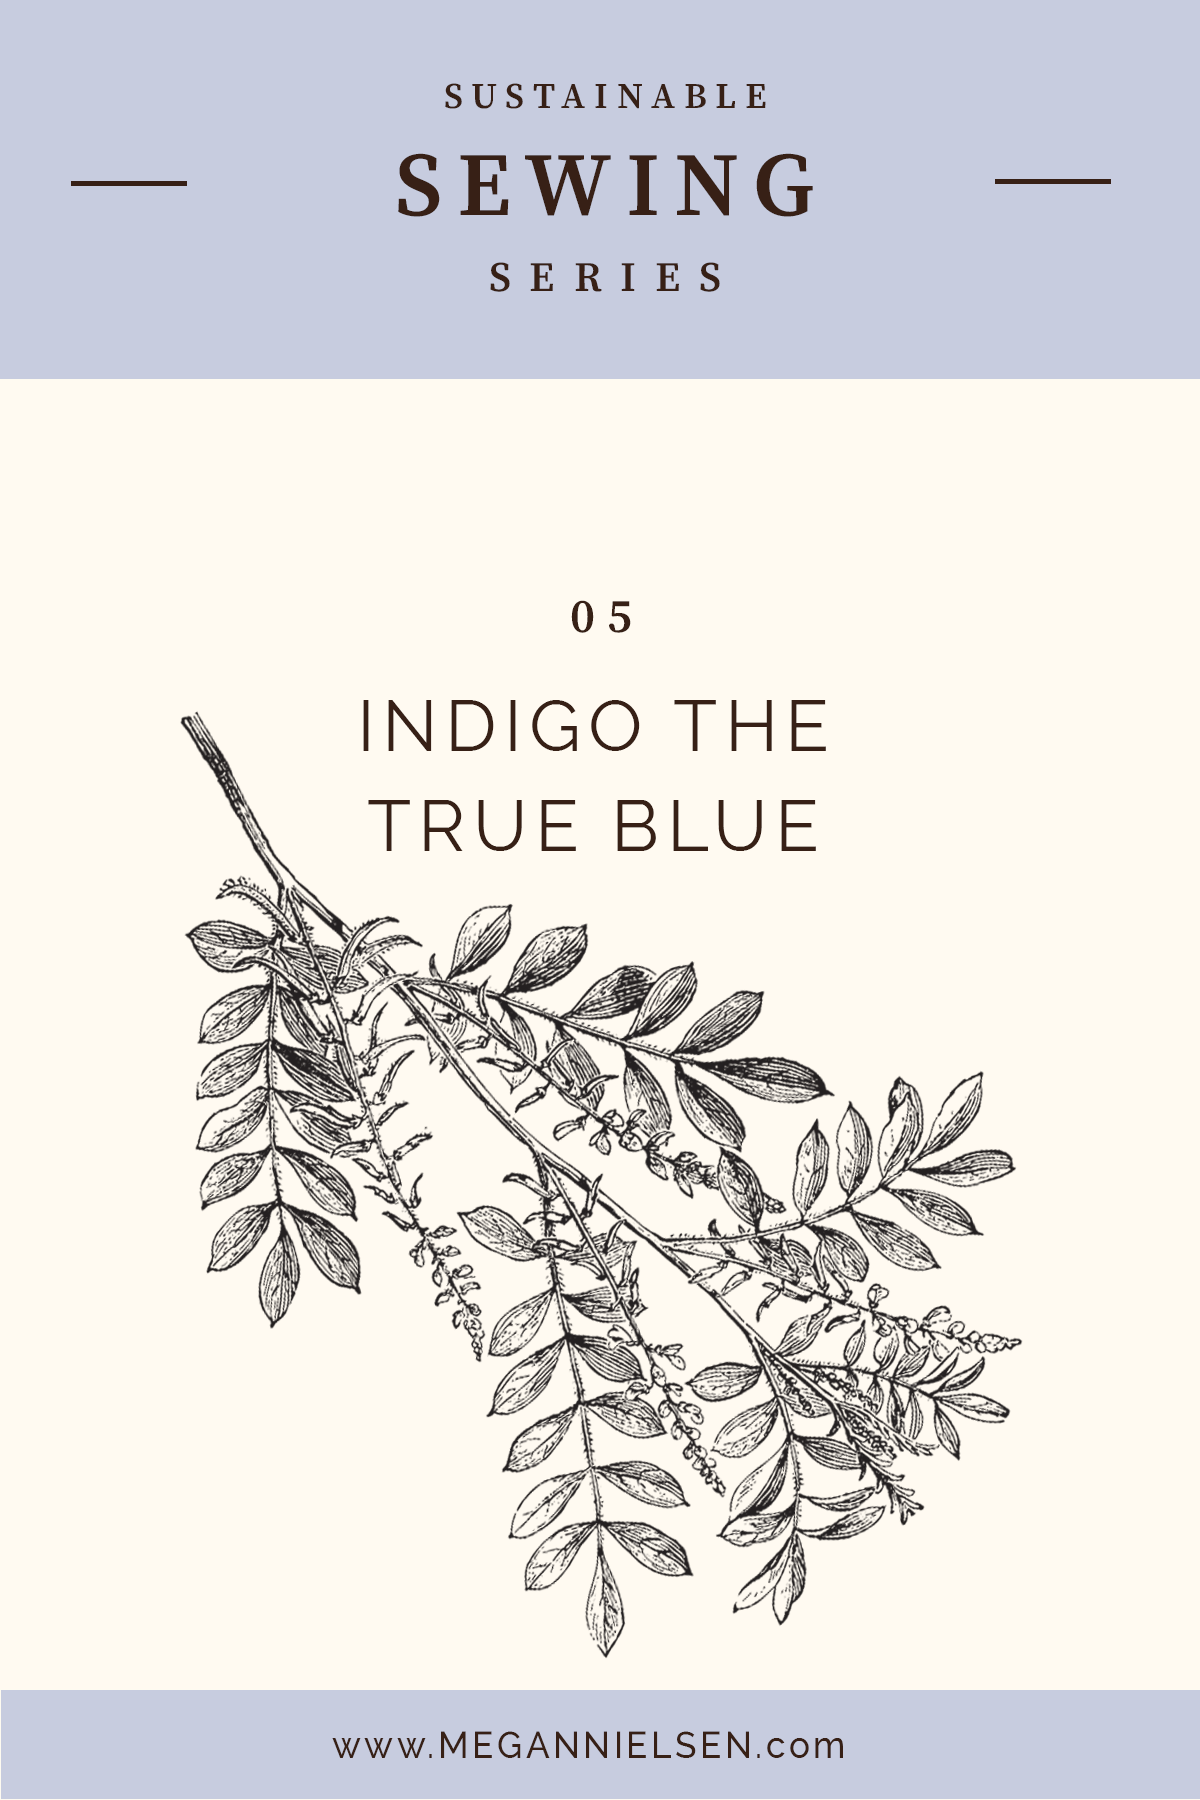 INDIGO THE TRUE BLUE